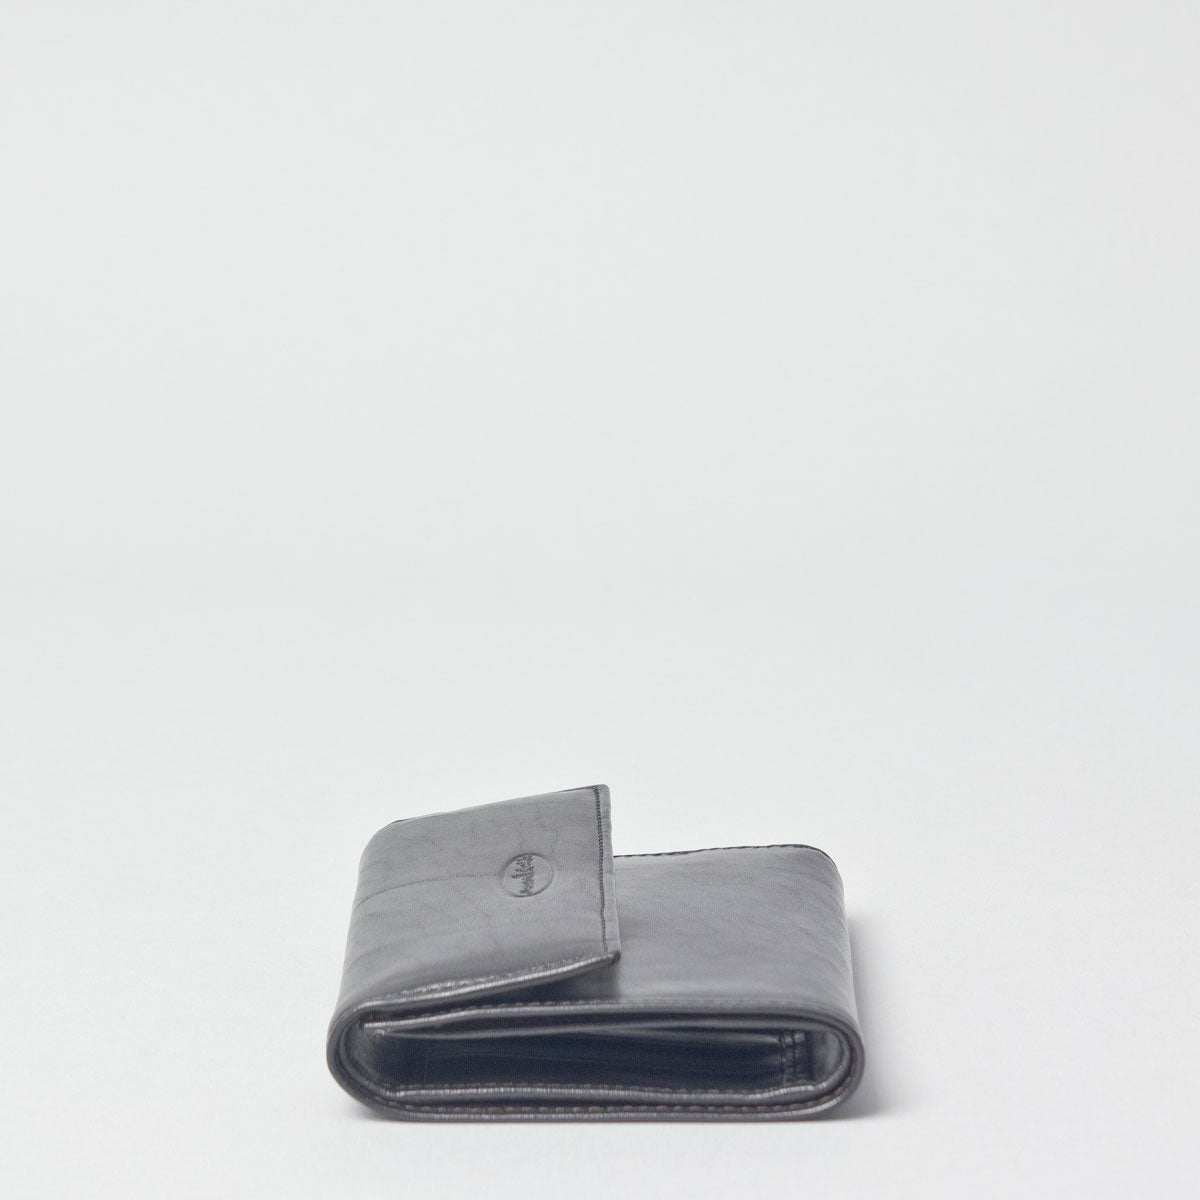 Image 4 of the 'Cetona' Black Veg-Tanned Multipurpose Wallet